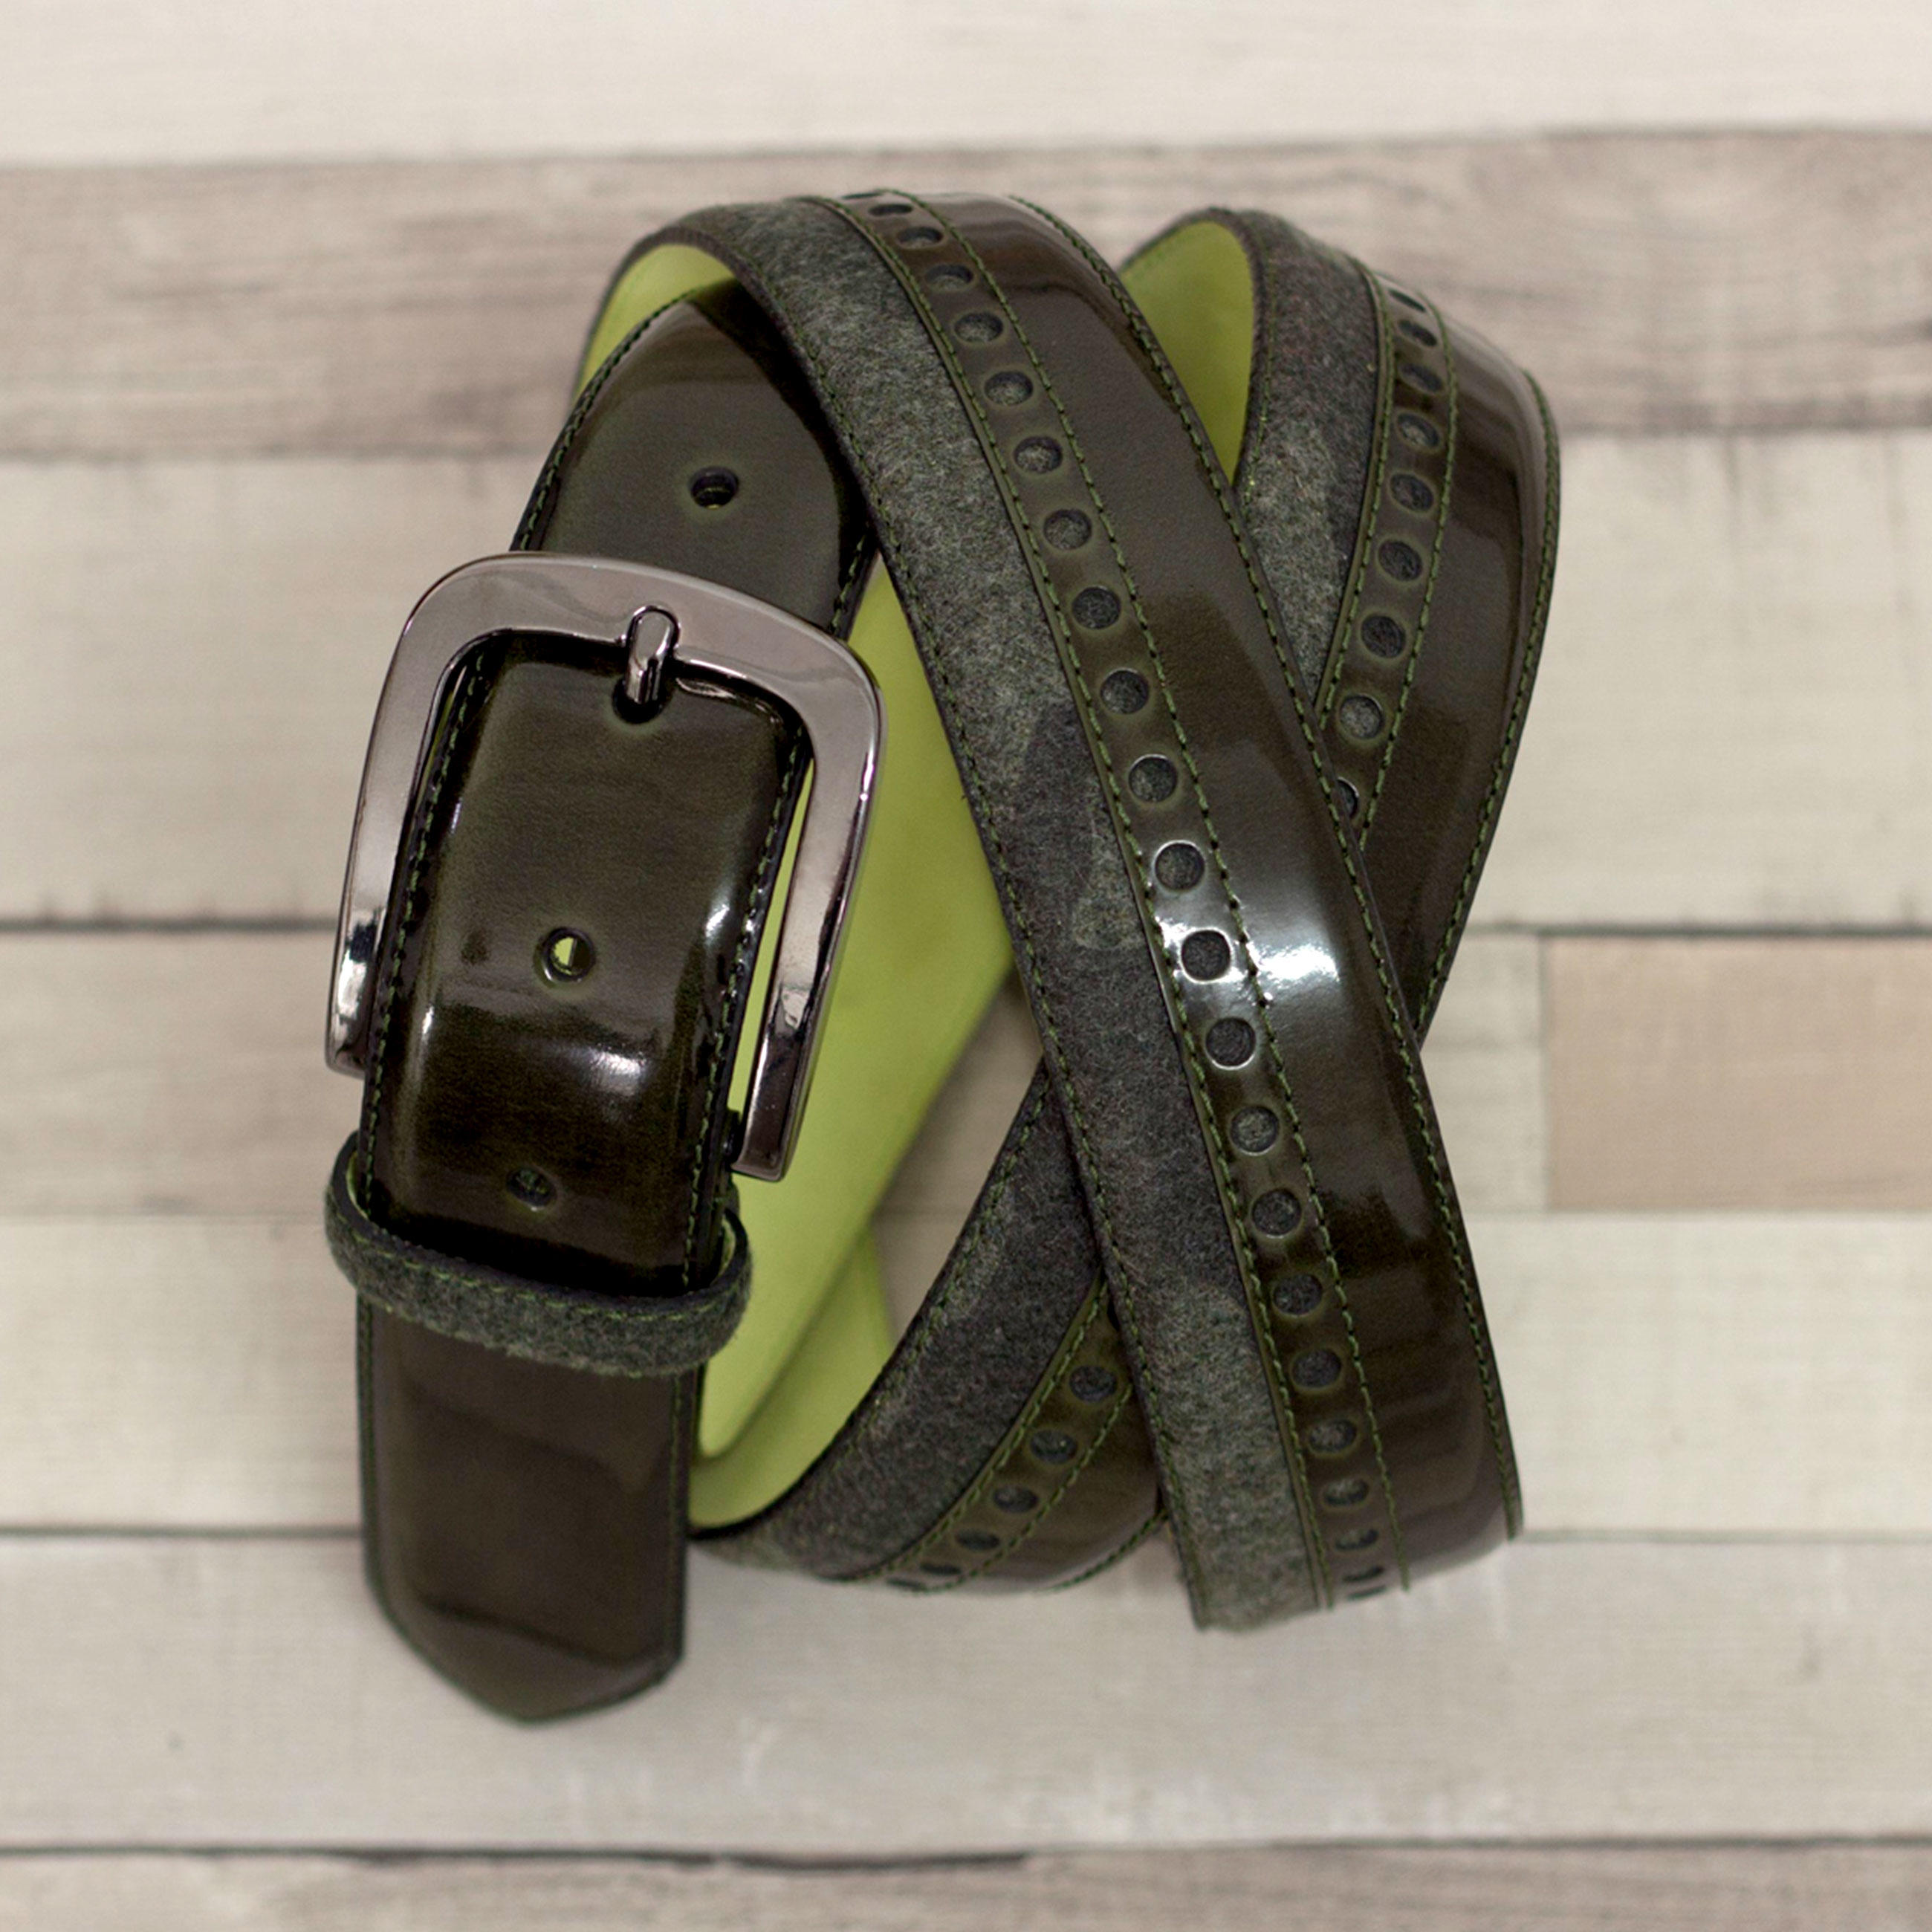 Manor of London 'SunValley' Green Polished Calfskin & Camo Flannel Belt Luxury Mens Belt Leather Full Belt View